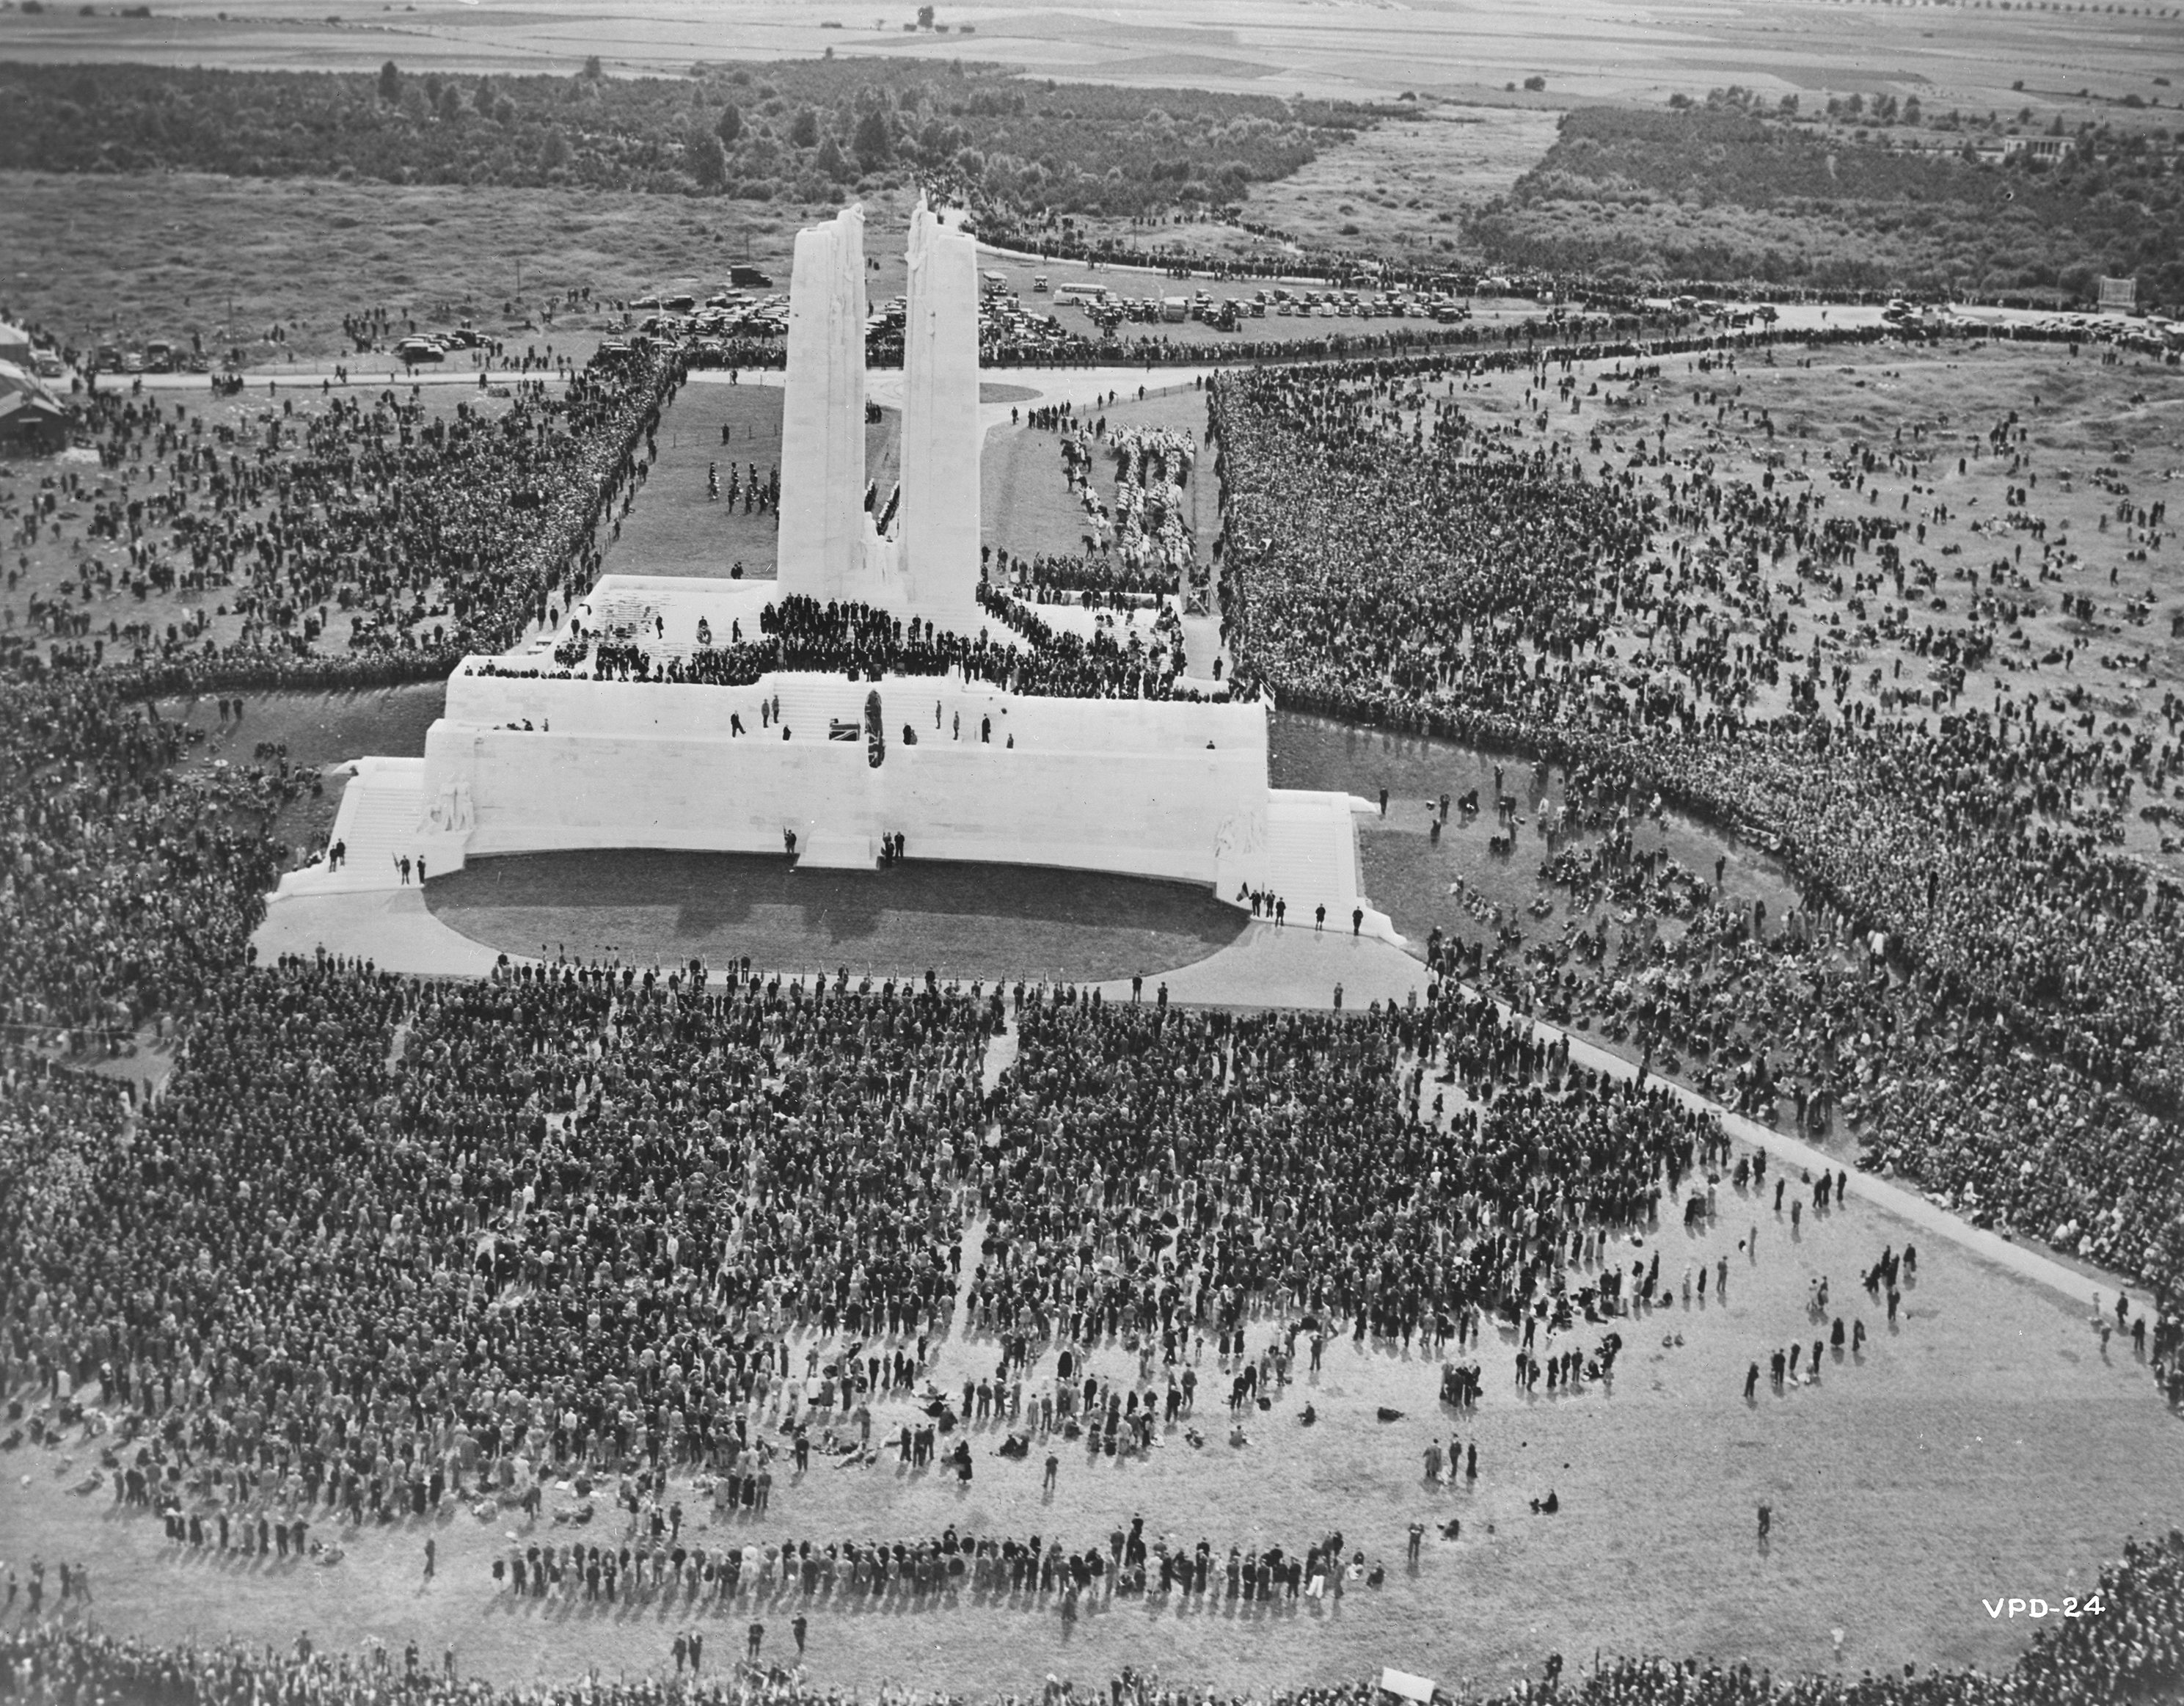 photography: His Majesty King Edward VIII unveils the Canadian National Memorial at Vimy Ridge. Library and Archives Canada, e011184988